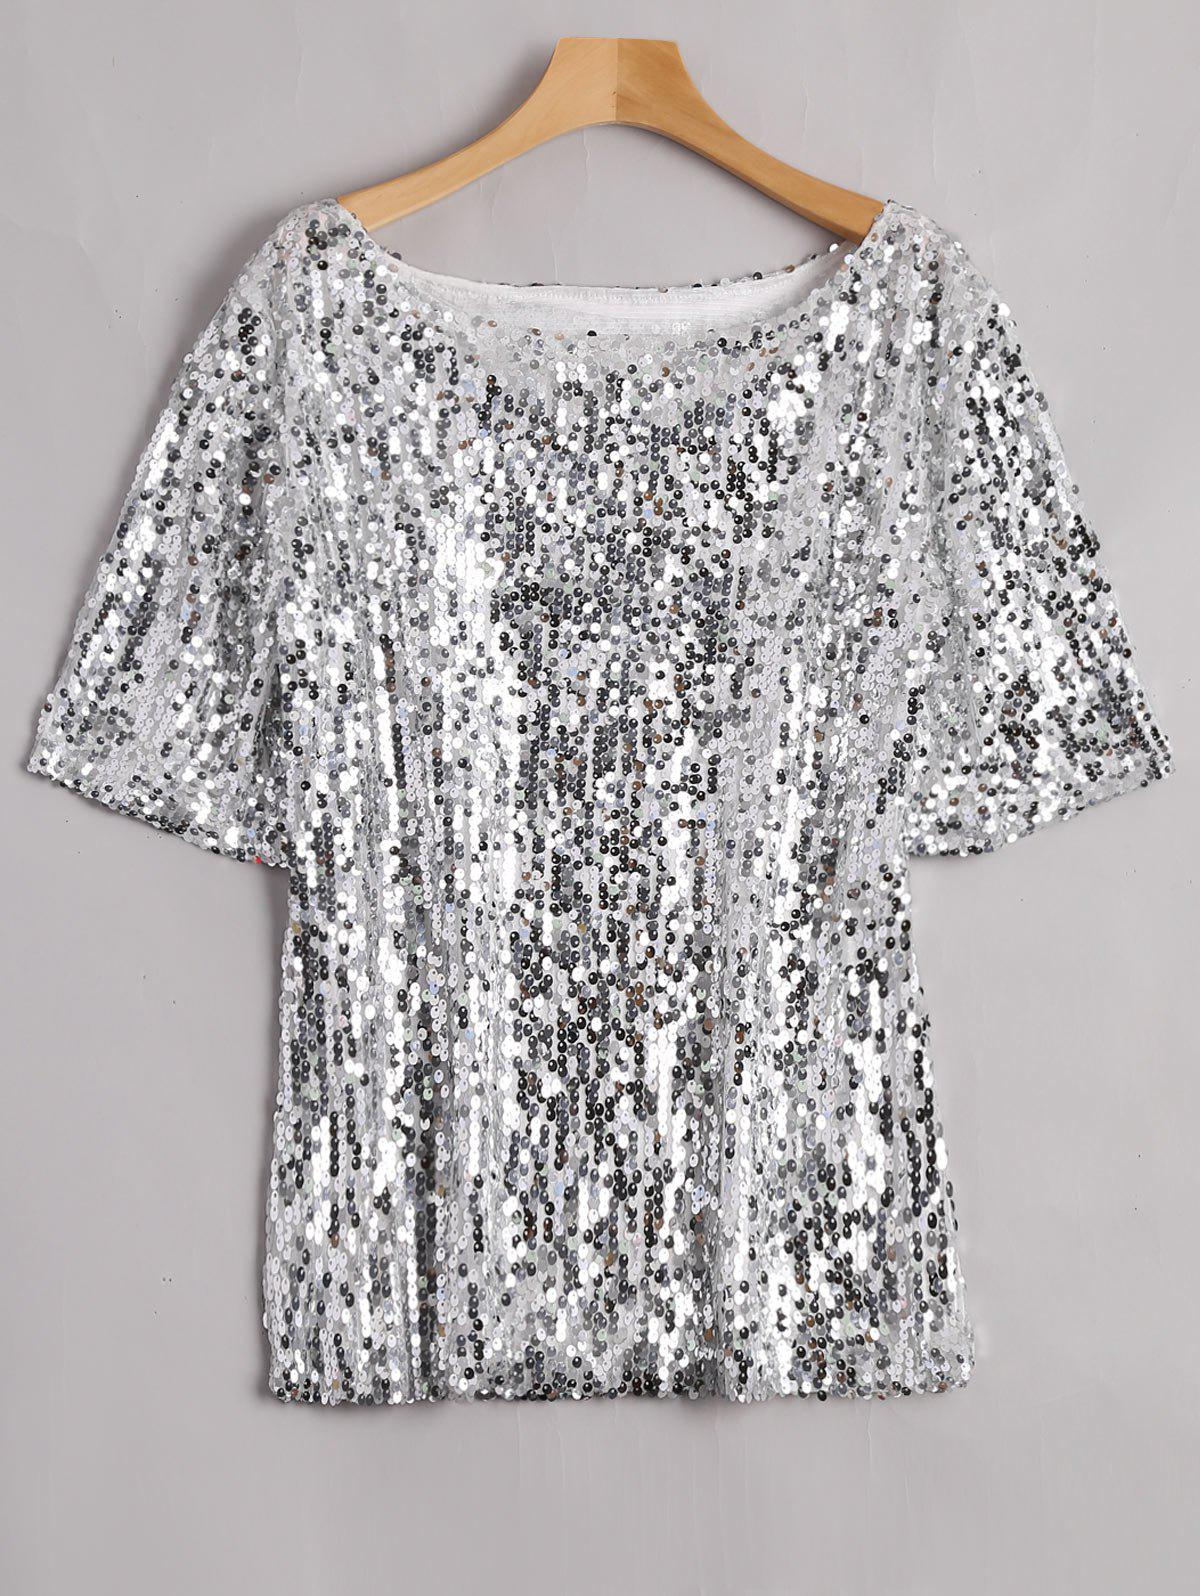 Plus Size Glitter Sequined T-shirtWOMEN<br><br>Size: 5XL; Color: SILVER; Material: Cotton Blends,Polyester; Shirt Length: Regular; Sleeve Length: Short; Collar: Scoop Neck; Style: Streetwear; Season: Spring,Summer; Embellishment: Sequins; Pattern Type: Solid; Weight: 0.3900kg; Package Contents: 1 x Tee;